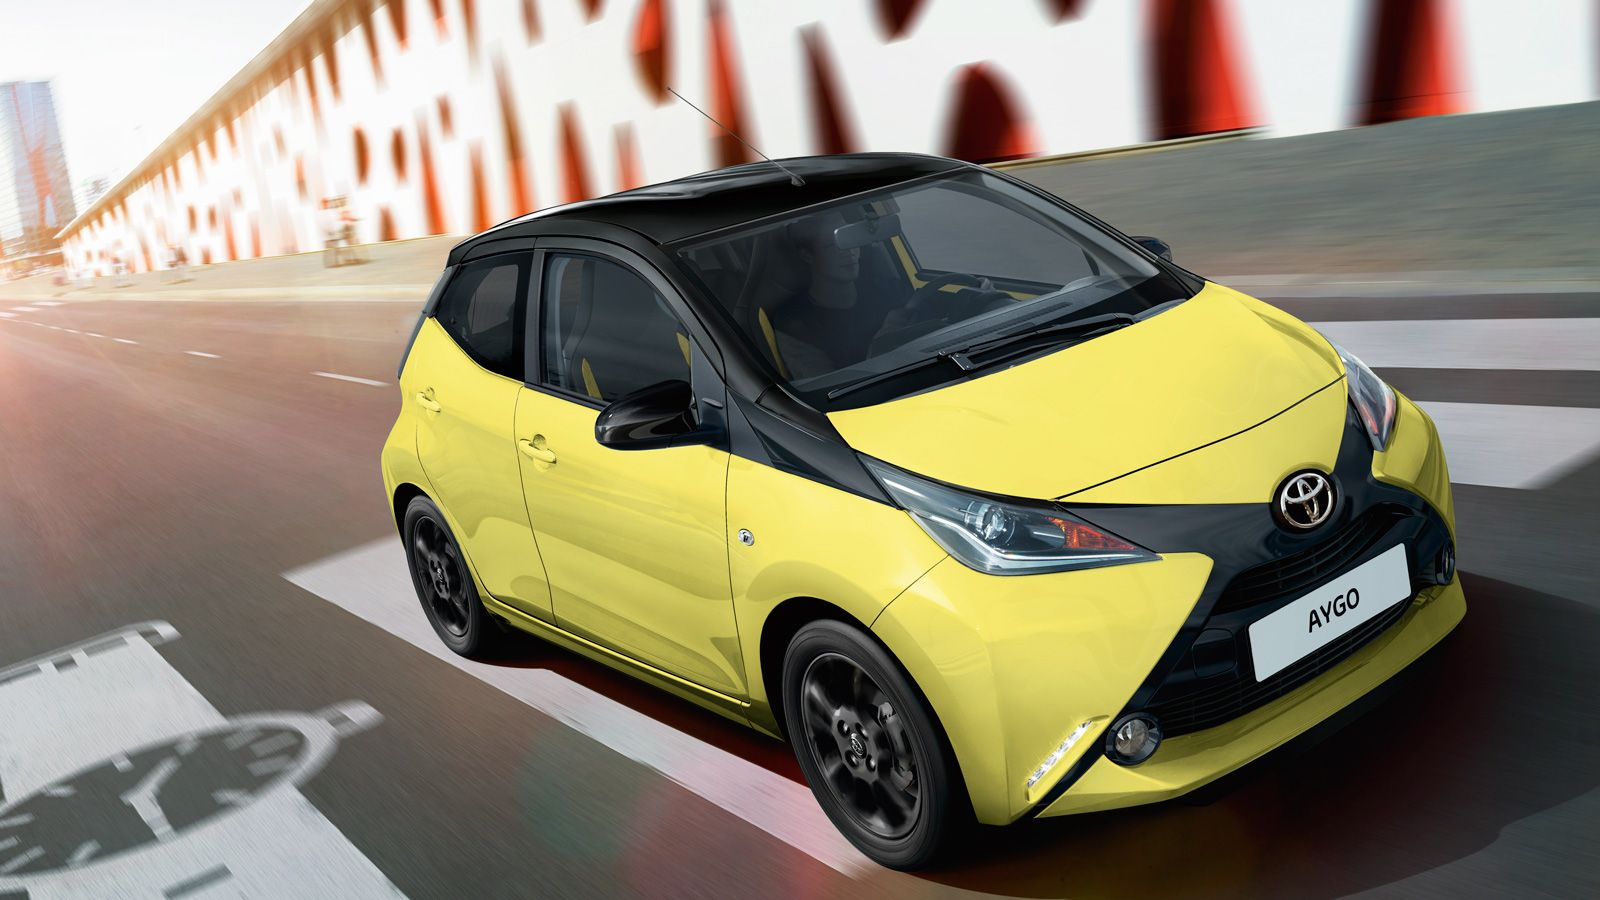 Aygo Small Cars City Cars Limited Edition Yellow Fizz